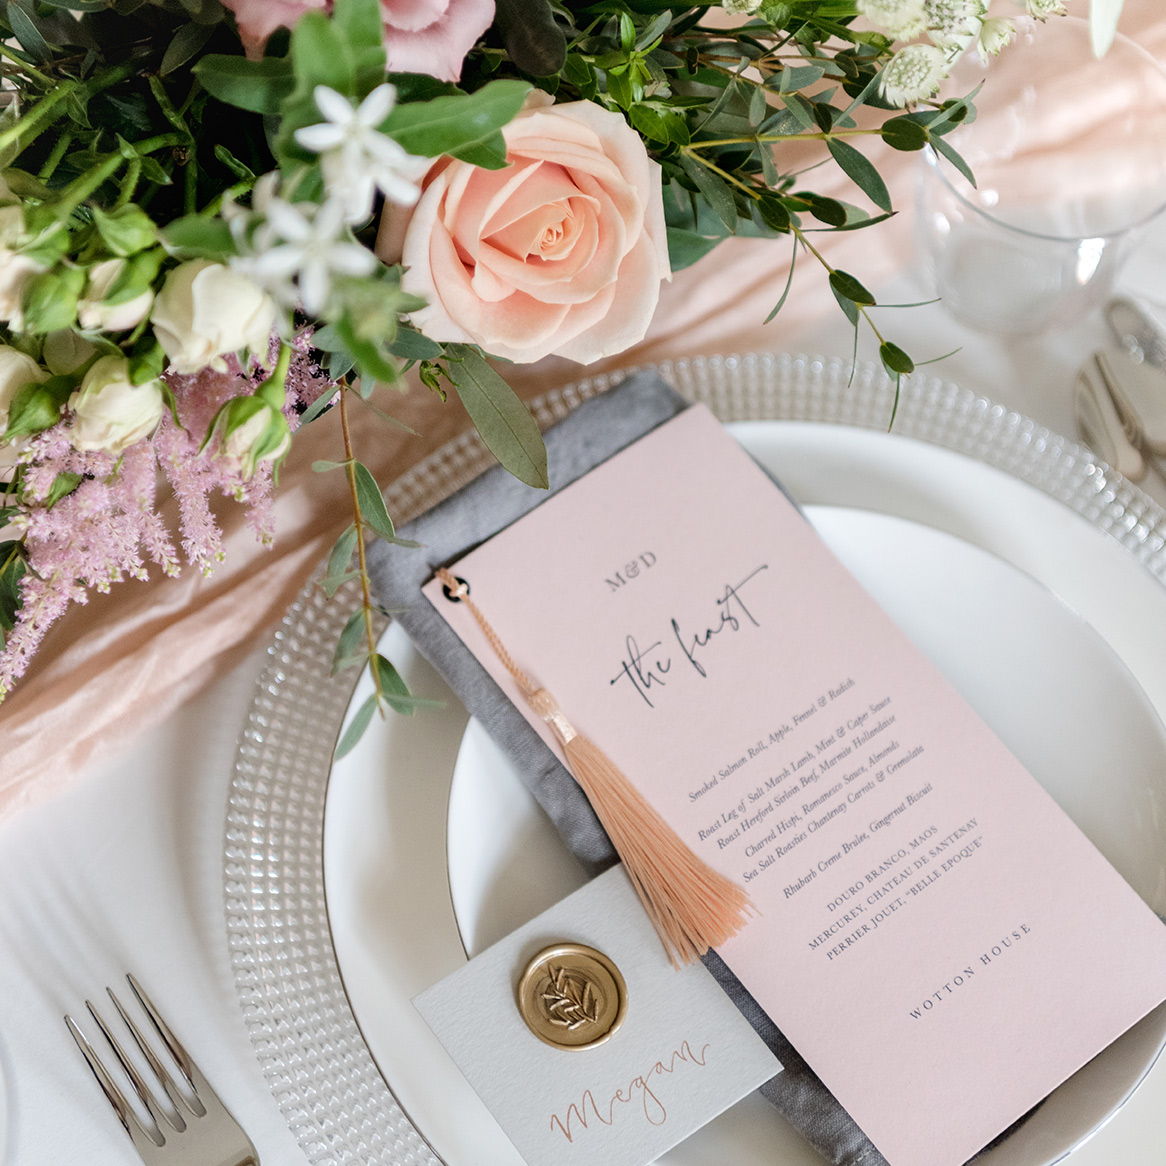 A place setting with blush coloured stationery